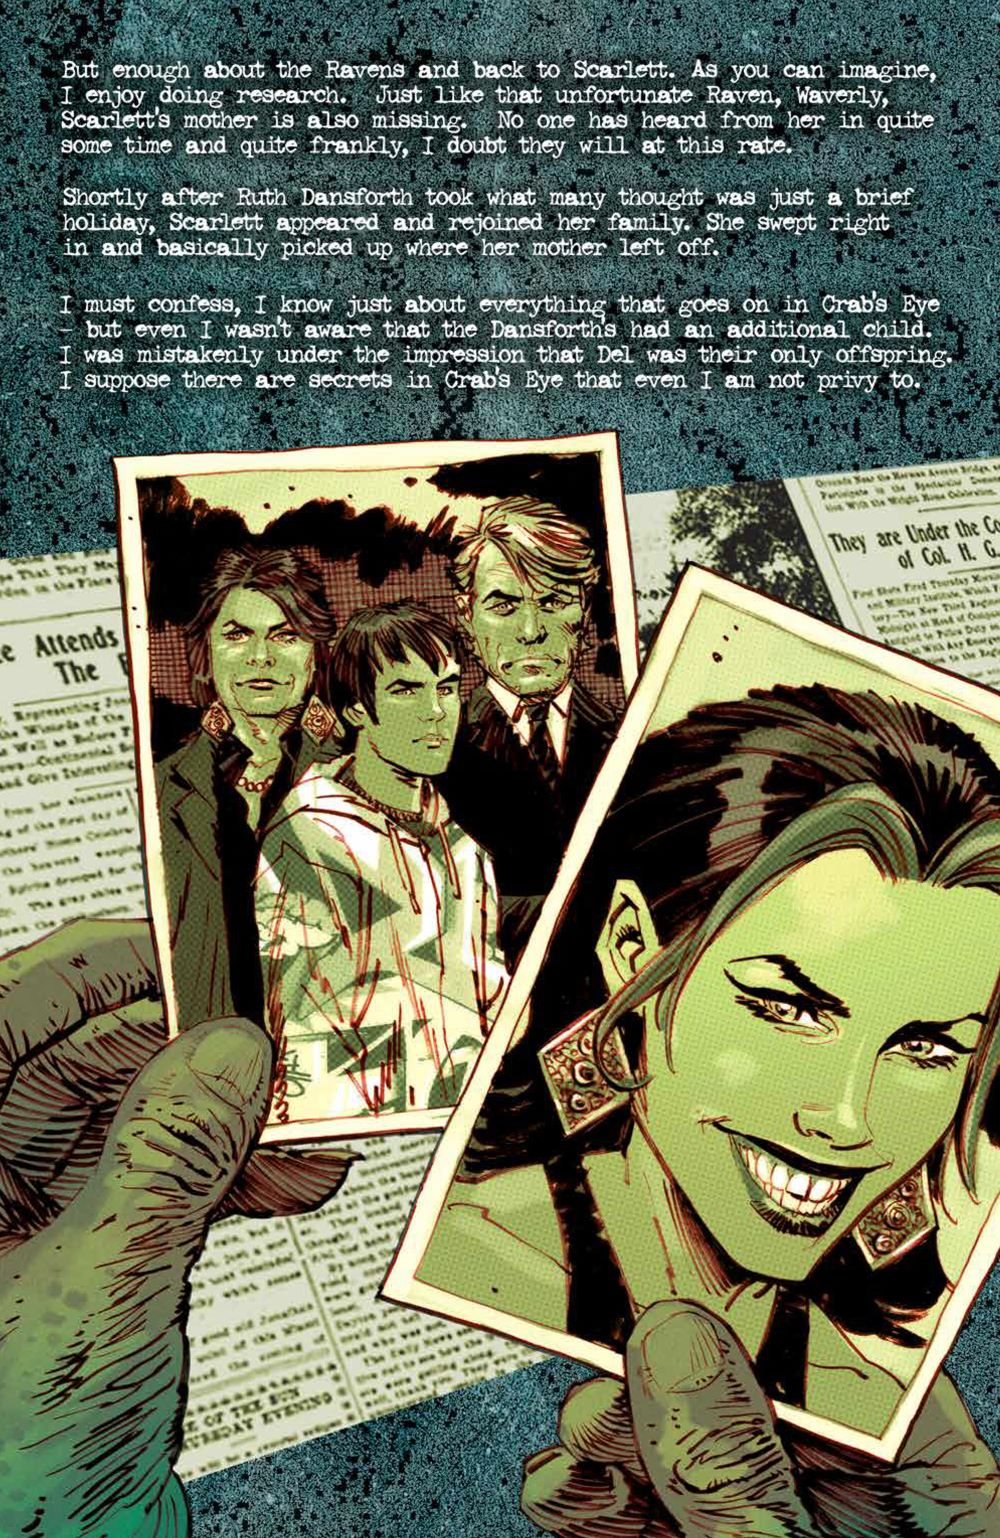 UnkindnessRavens_004_PRESS_6 ComicList Previews: AN UNKINDNESS OF RAVENS #4 (OF 4)